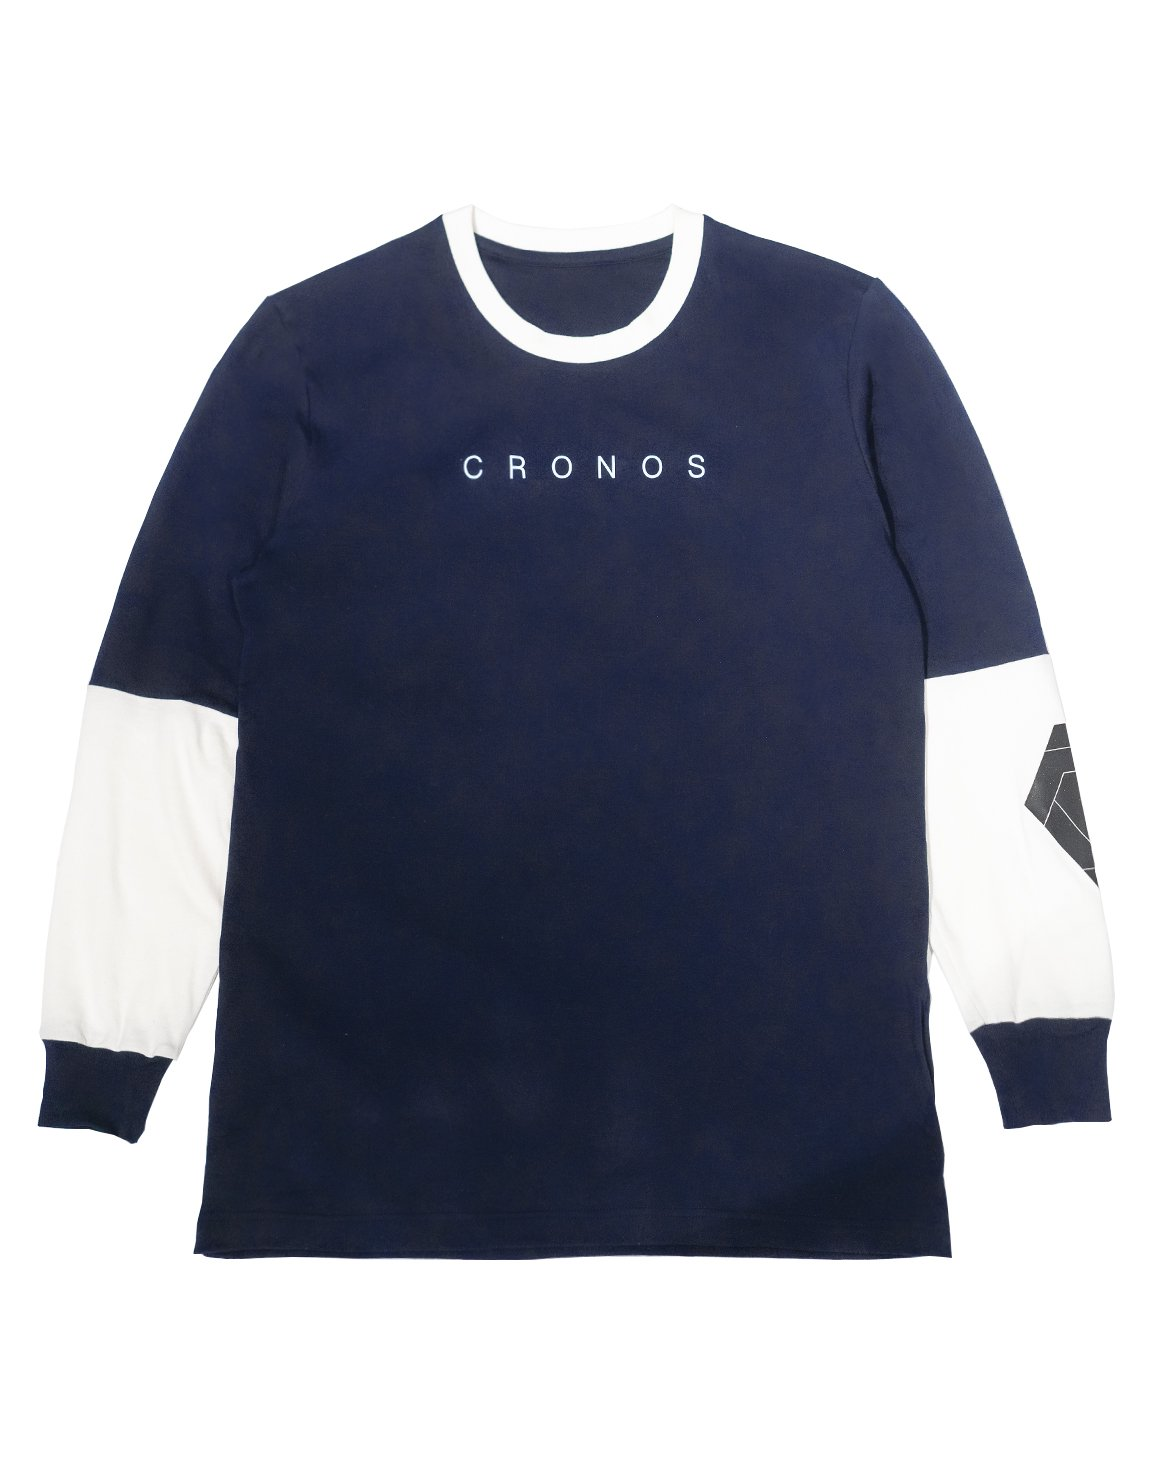 <img class='new_mark_img1' src='https://img.shop-pro.jp/img/new/icons1.gif' style='border:none;display:inline;margin:0px;padding:0px;width:auto;' />CRONOS NEW ARM LOGO LONG SLEEVE【NAVY】